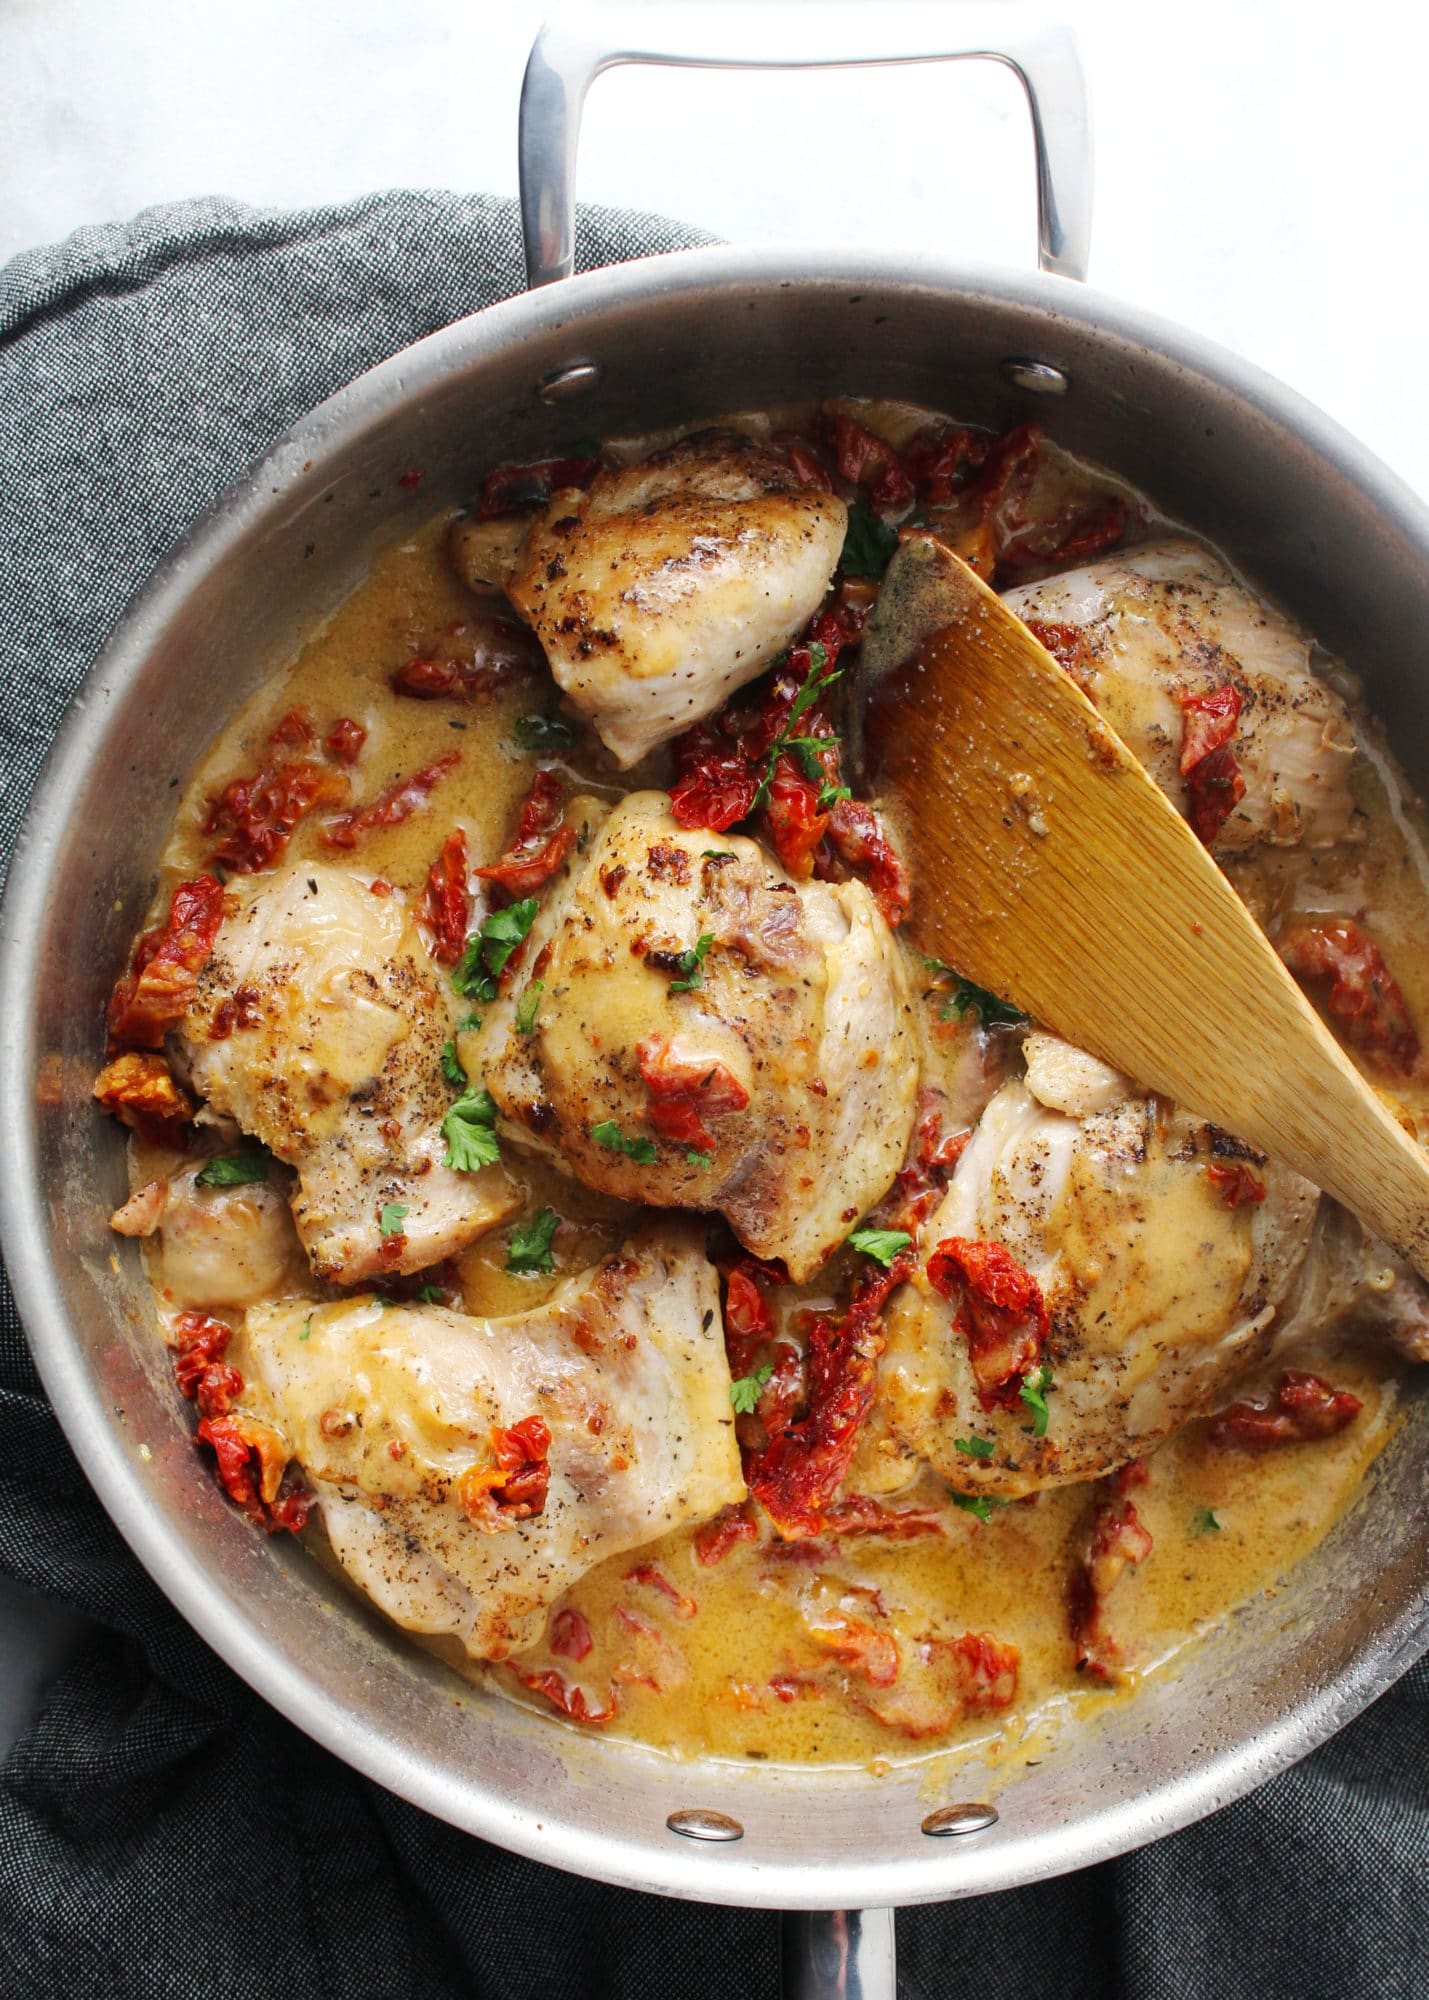 A creamy and healthy, gluten-free, dairy-free dish of easy to make Pan Seared Chicken with Sun-Dried Tomatoes. Perfect for busy weeknights | via @AimeeMarsLiving | #Sun-DriedTomatoes #Chicken #PanSeared